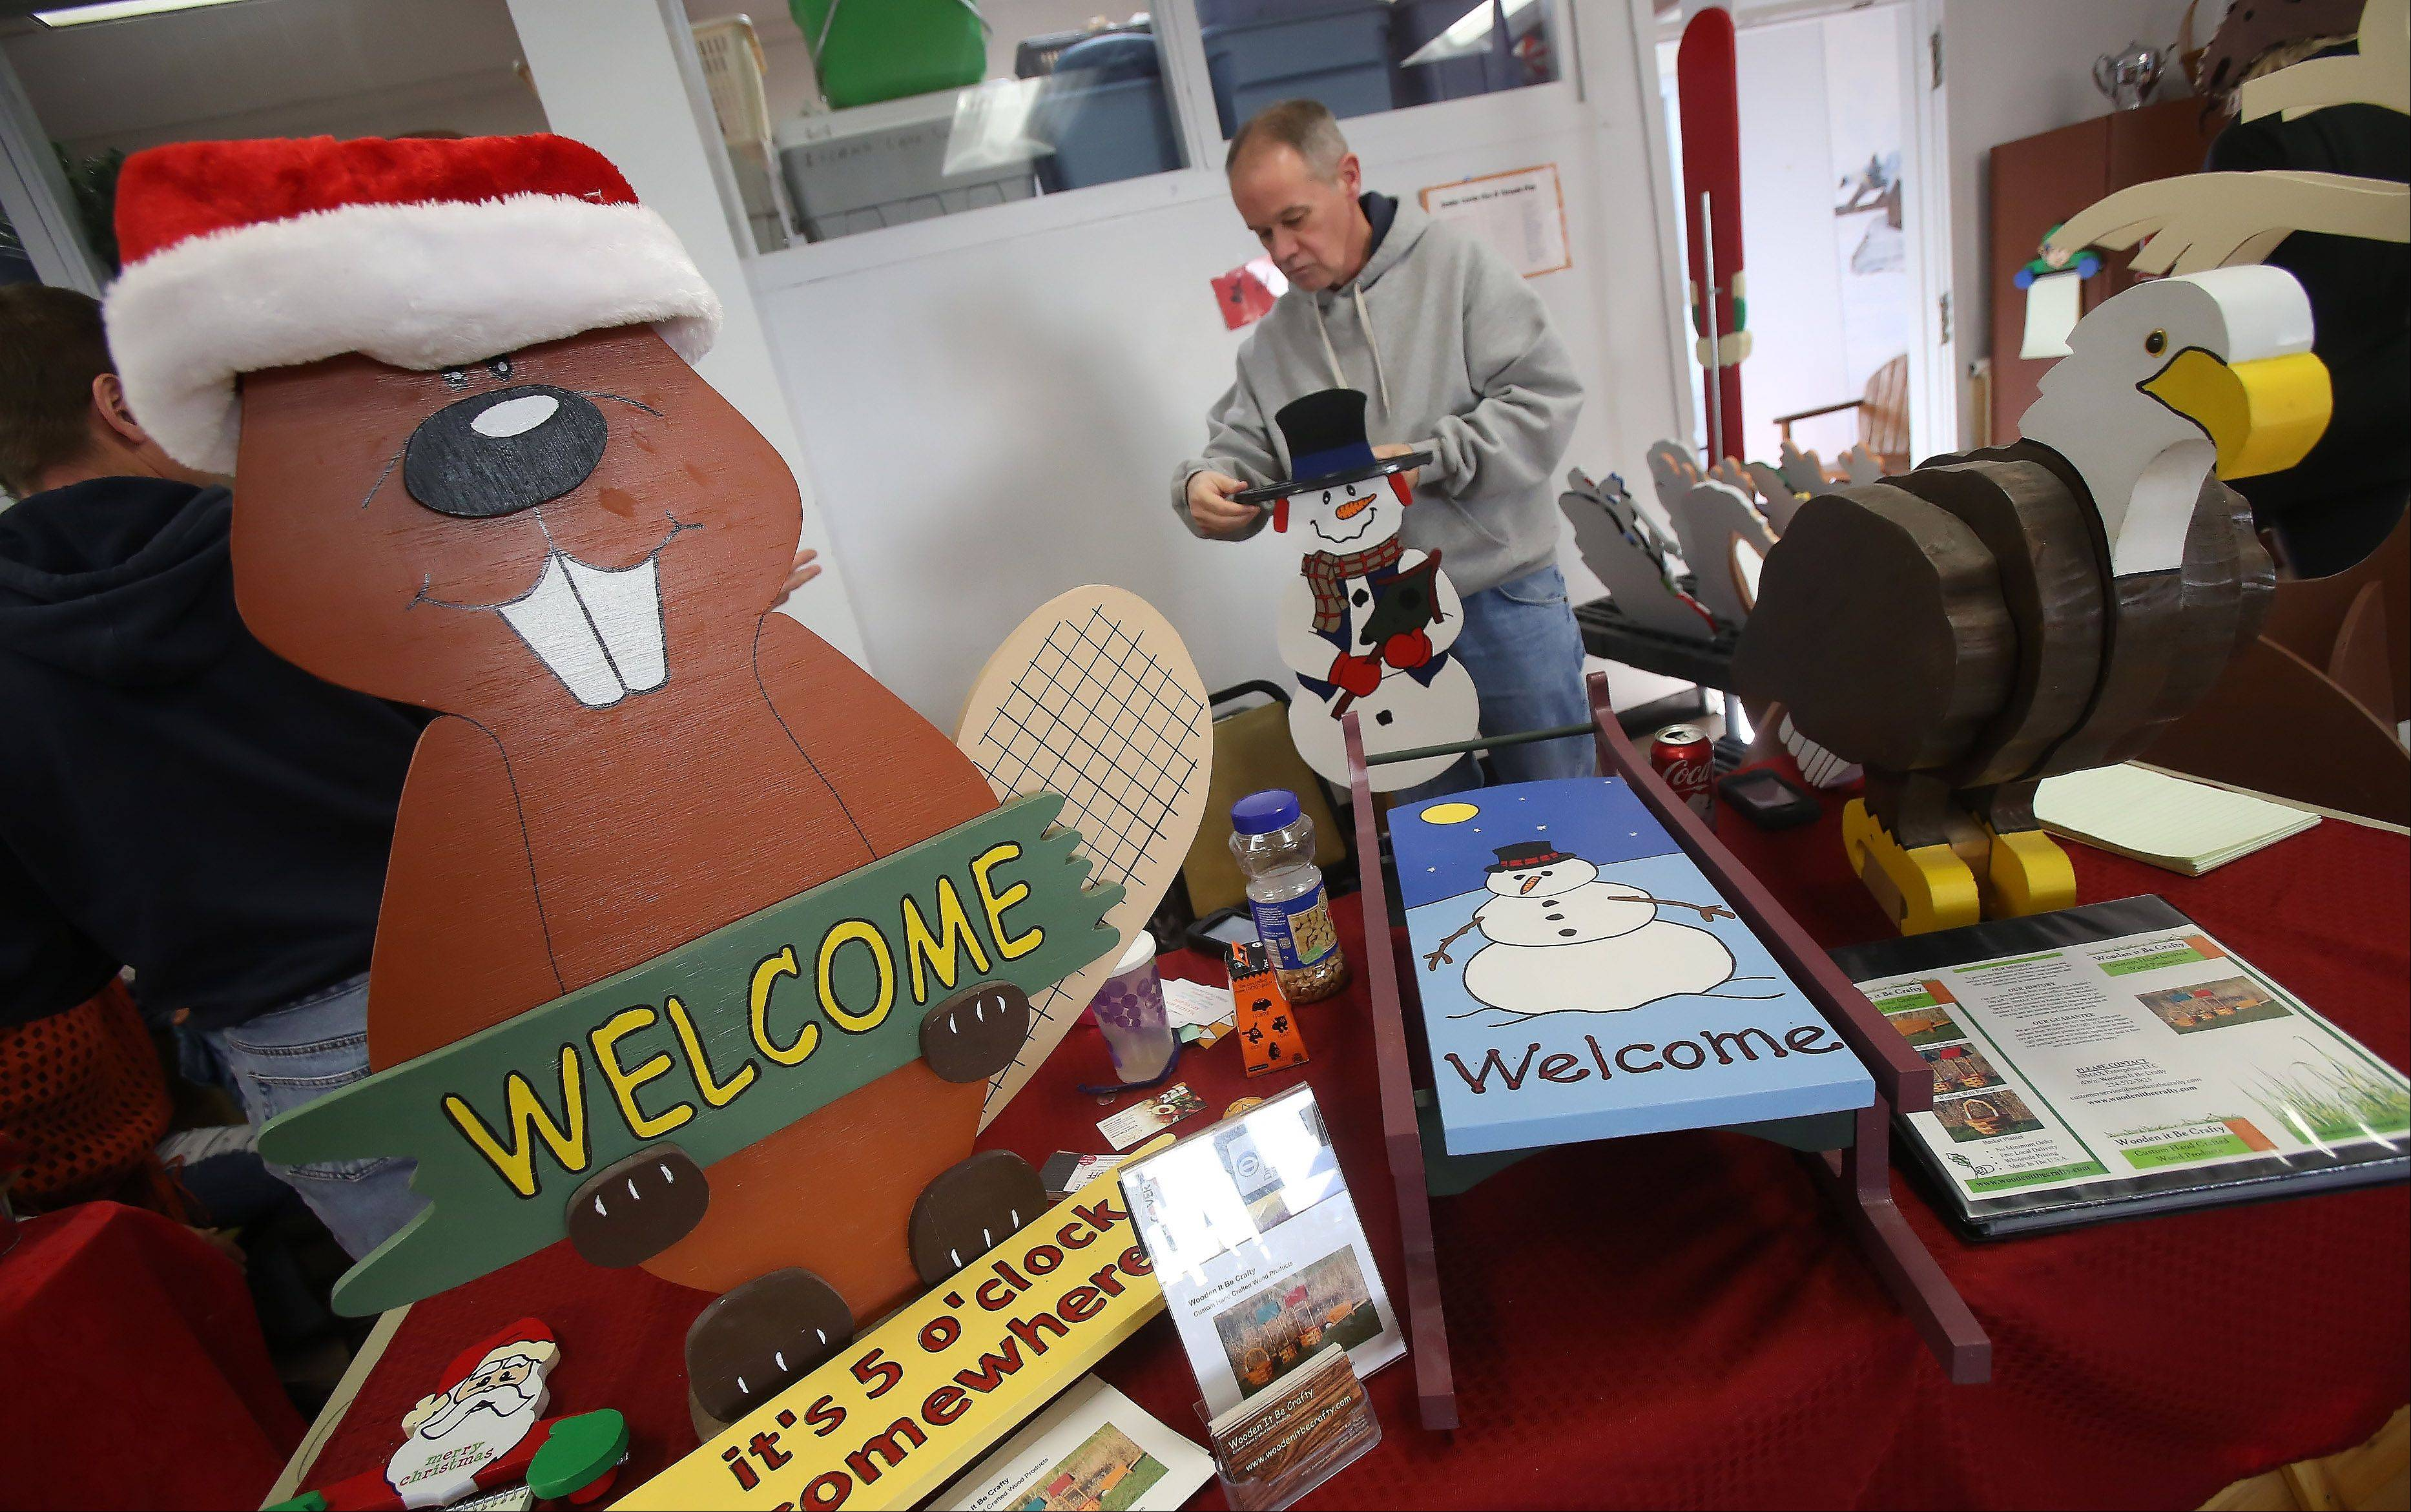 Crafter Mike Sikorski works on a sign at Wooden It Be Crafty during Island Lake's 27th annual Holiday Craft Fair Sunday at the Island Lake Village Hall. The fair featured almost 45 vendors offering crafts, jewelry, gifts, clothing and more. On Sunday, Santa Claus met with children and adults alike to spread holiday cheer.